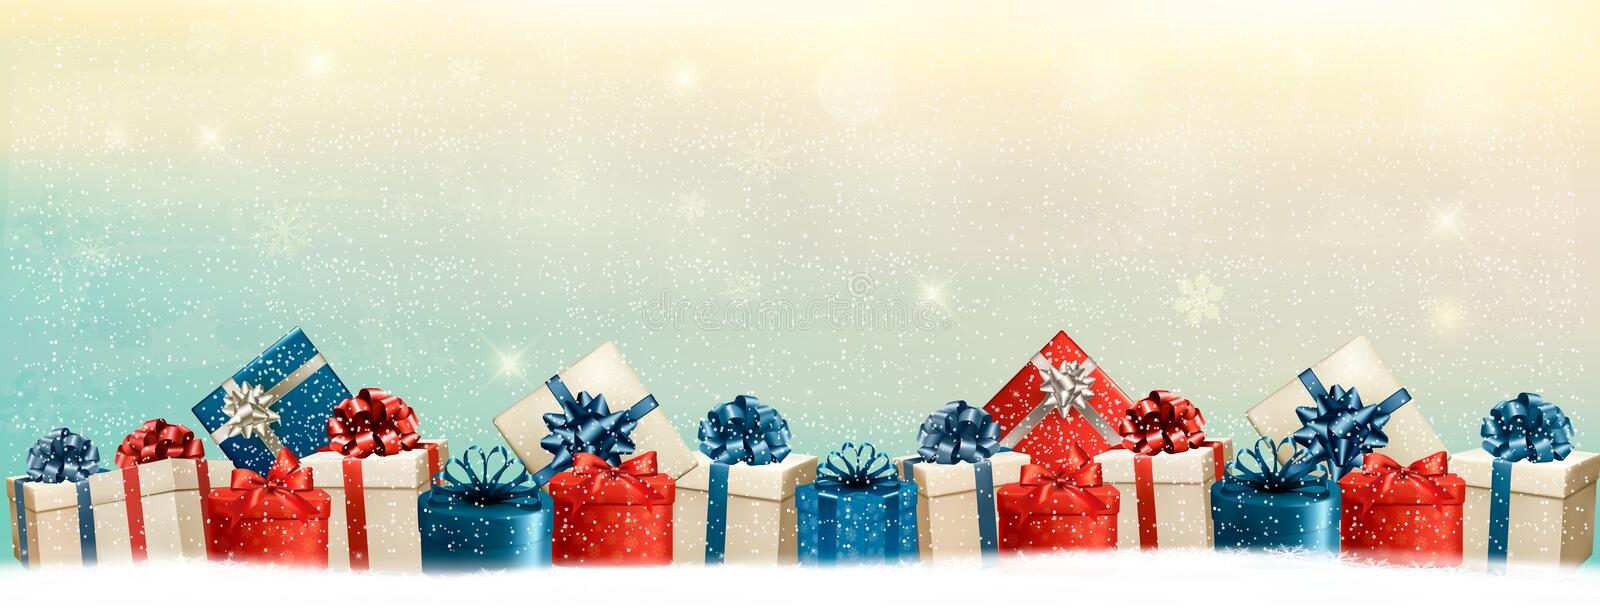 Holiday Christmas Background With A Border Of Gift Boxes